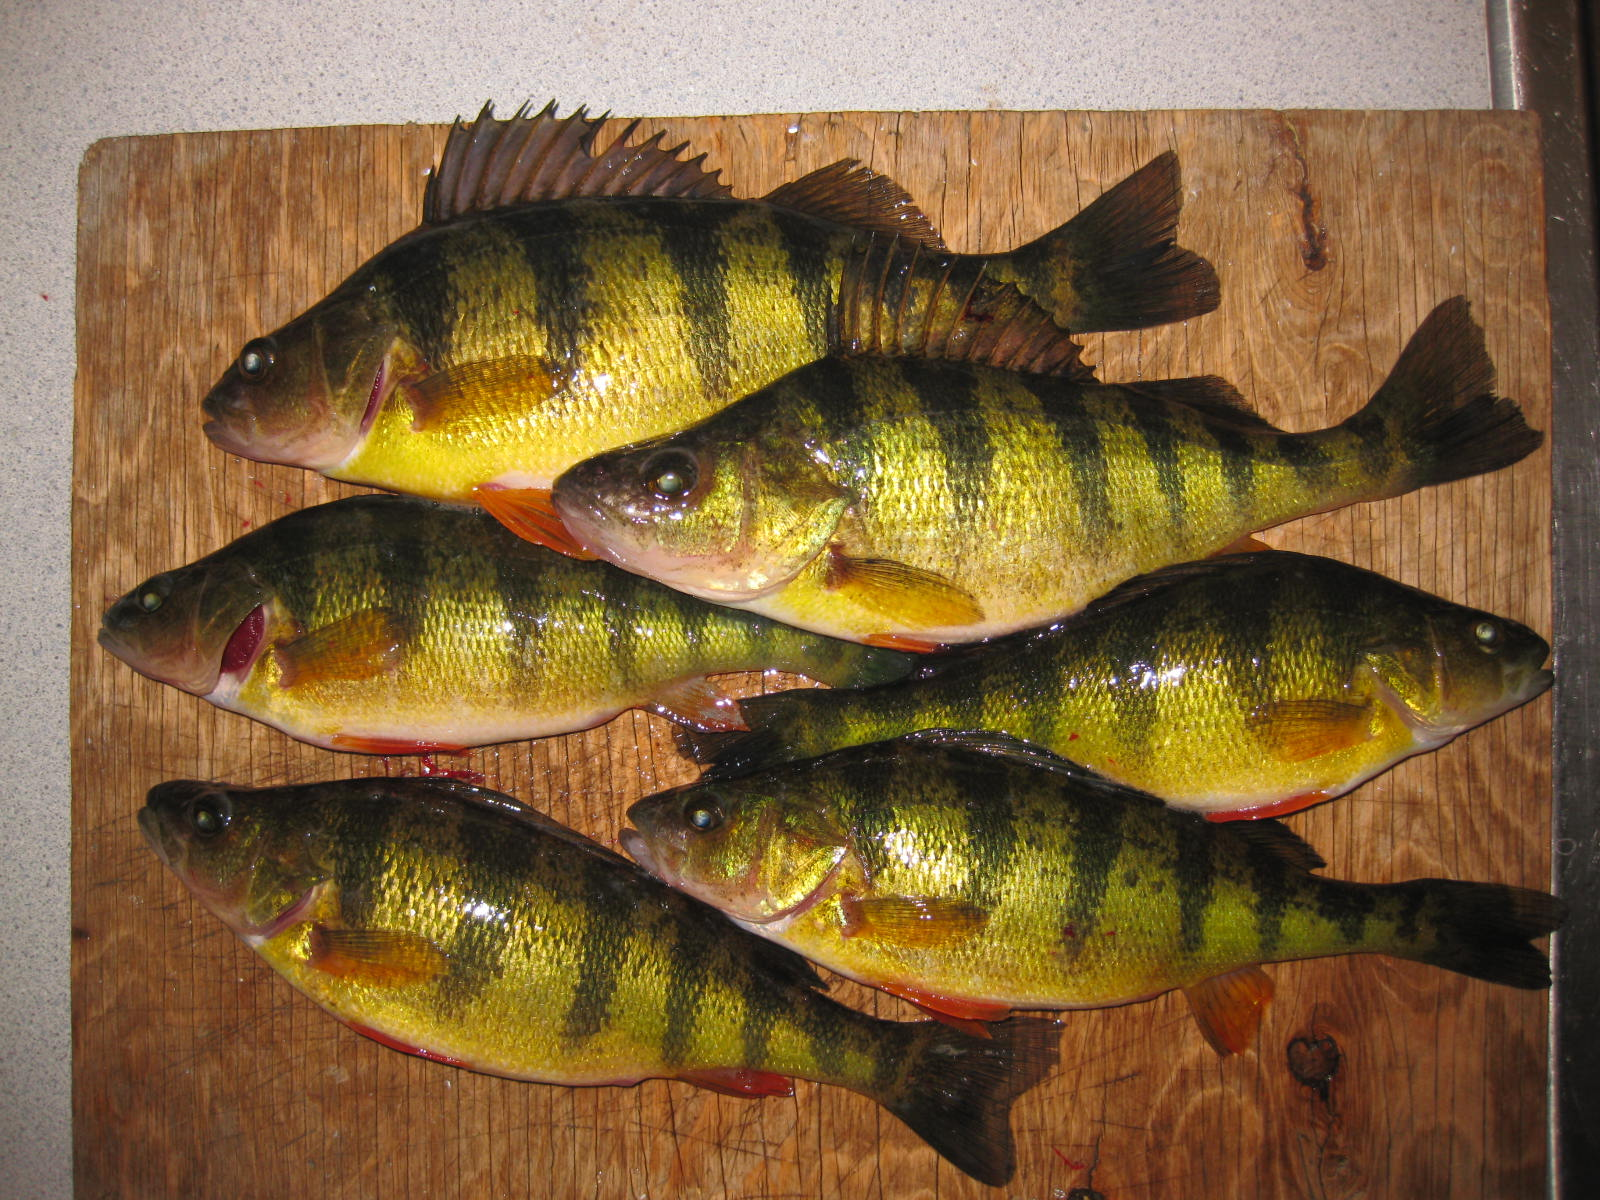 Fish h8 me champlain ice and yellow perch for Ice fishing for perch